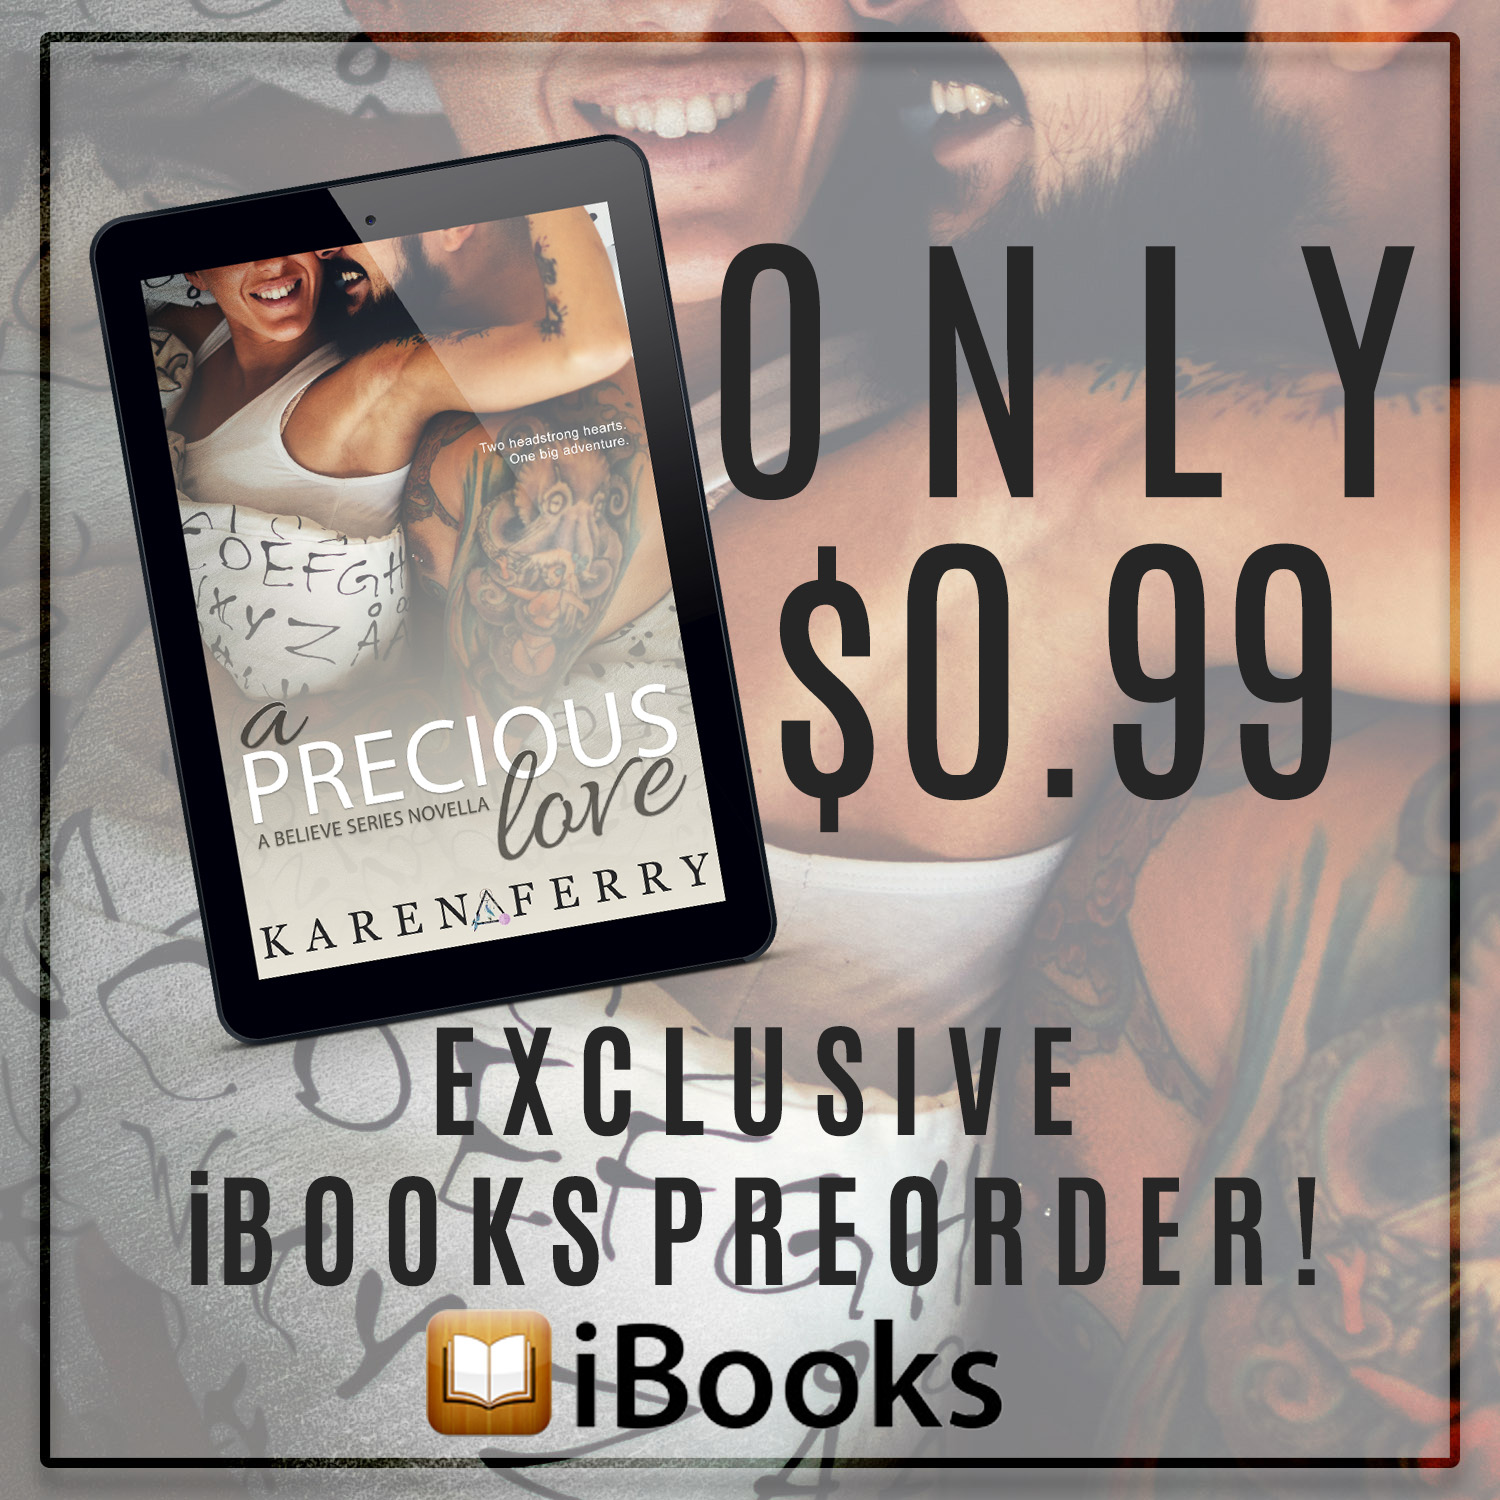 APL iBooks Preorder Graphic